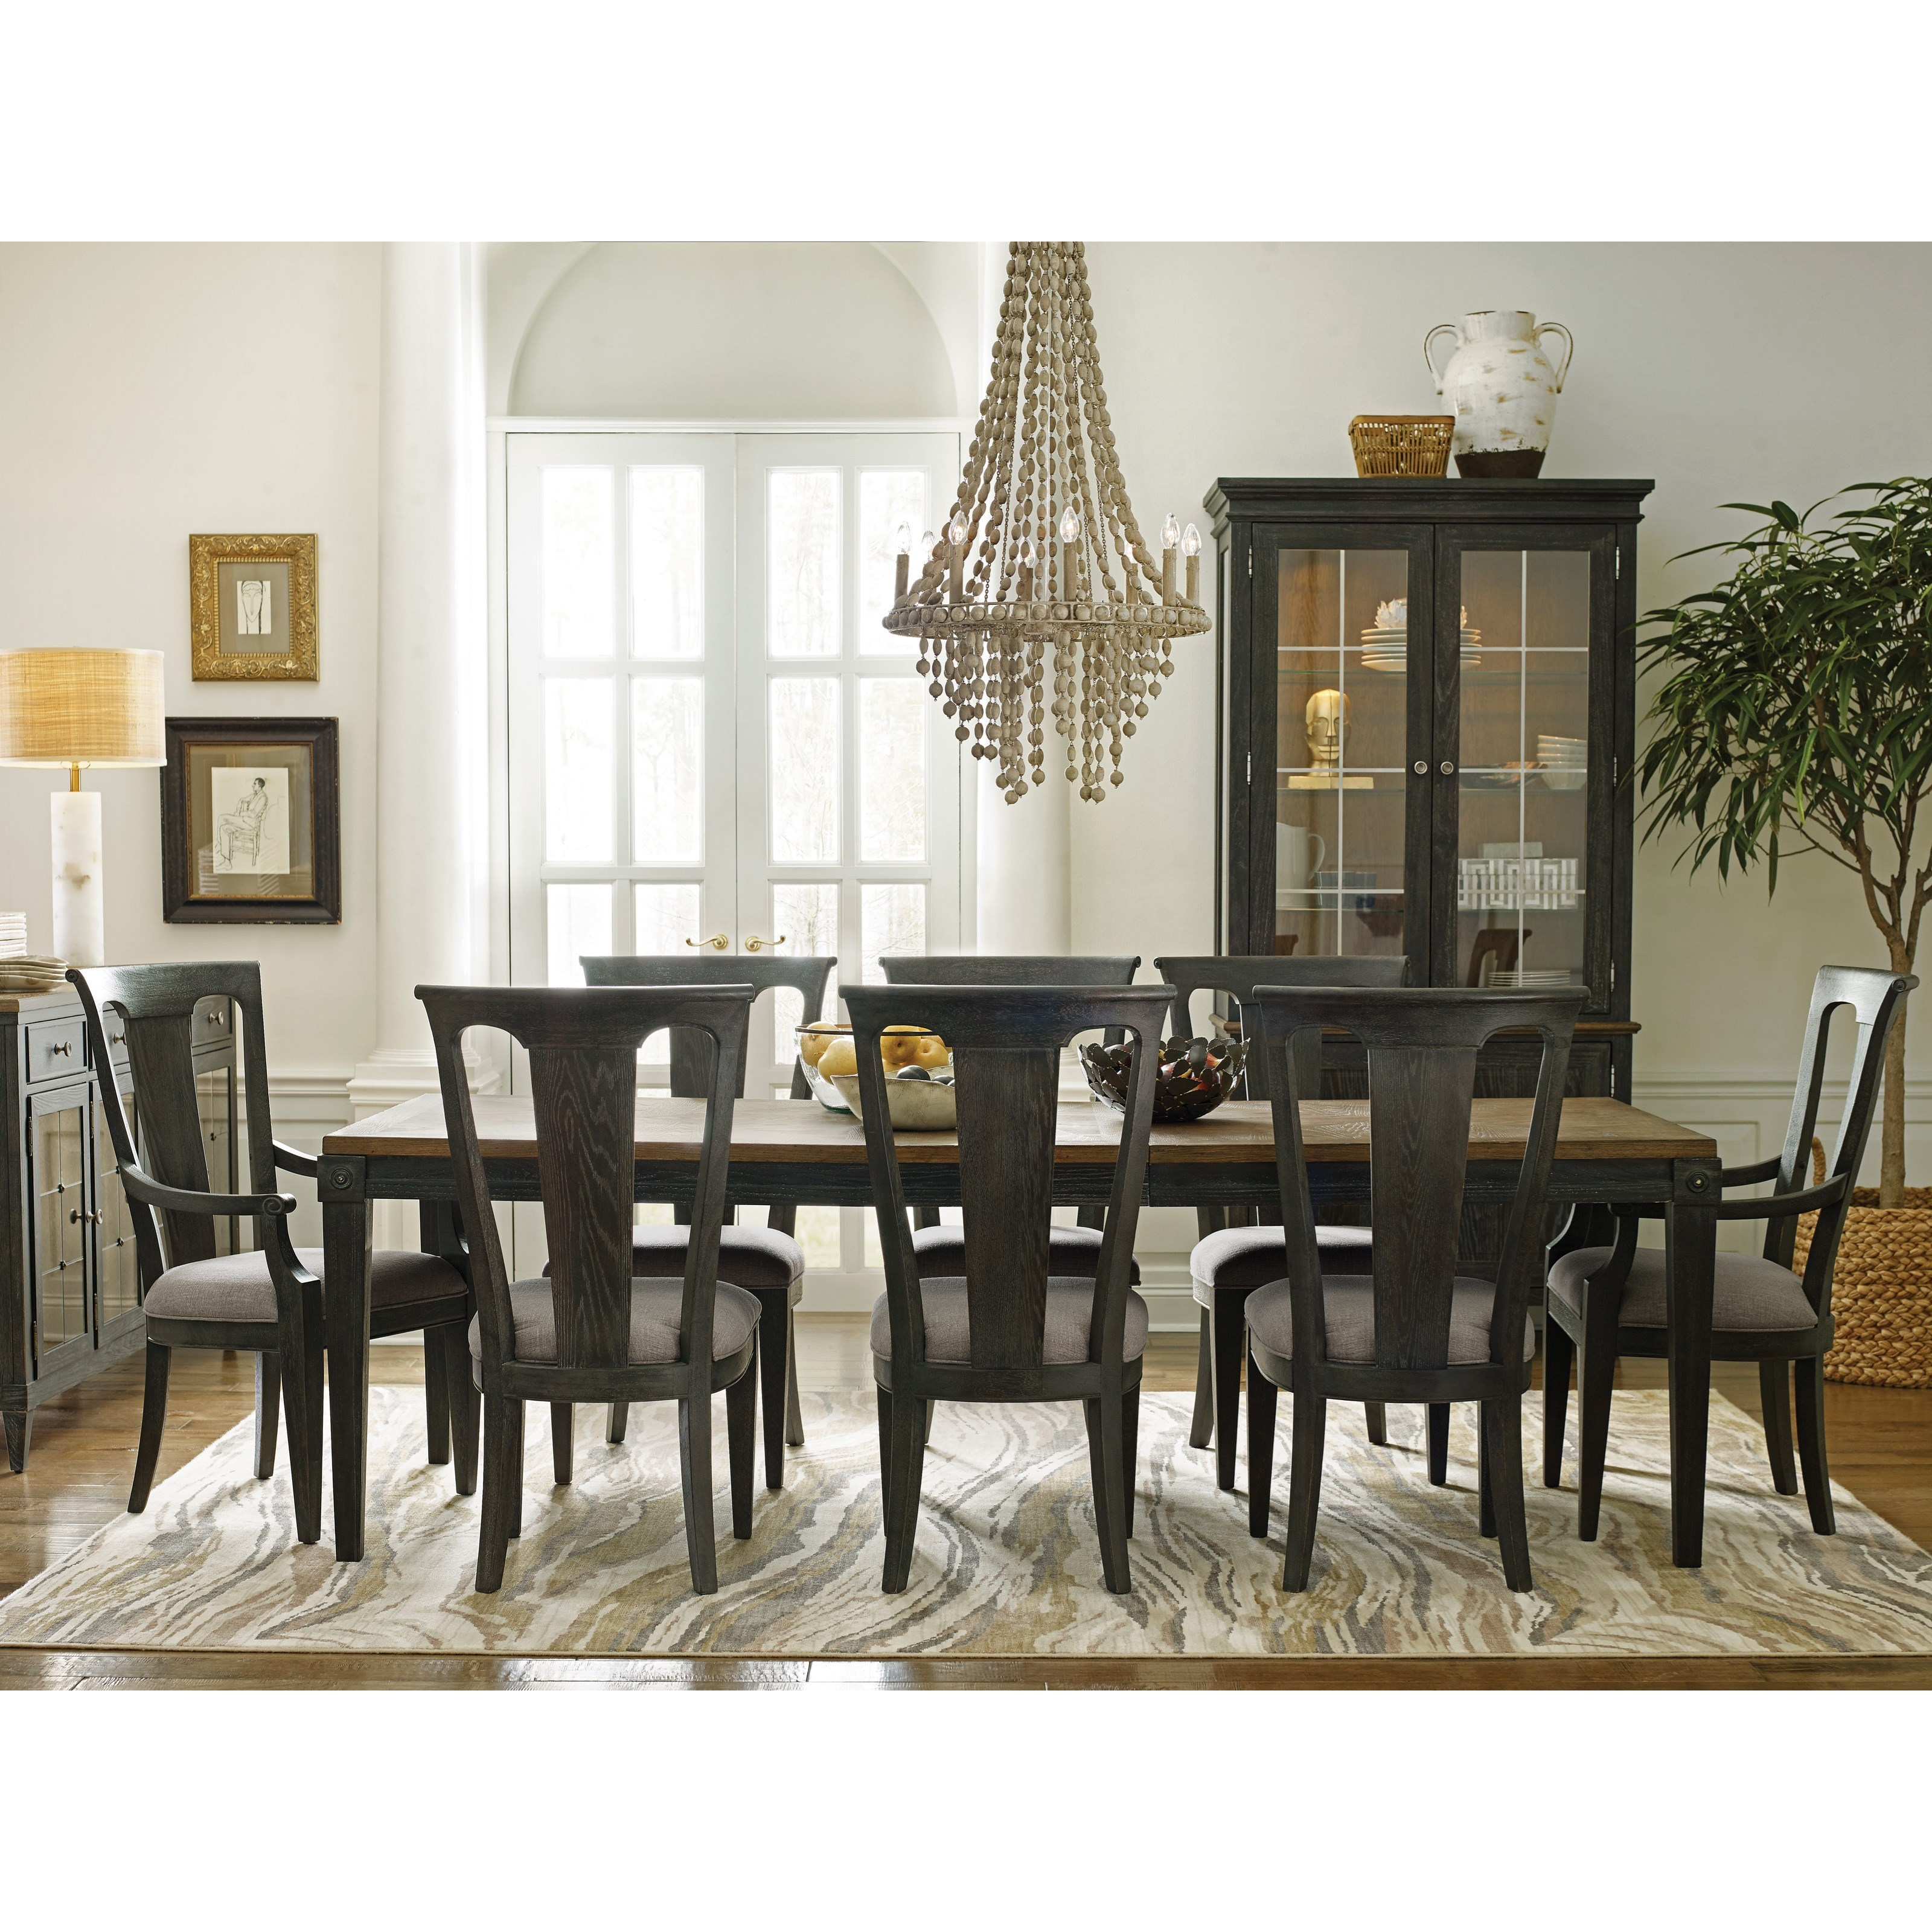 Ardennes Dining Table and Chair Set  by American Drew at Northeast Factory Direct